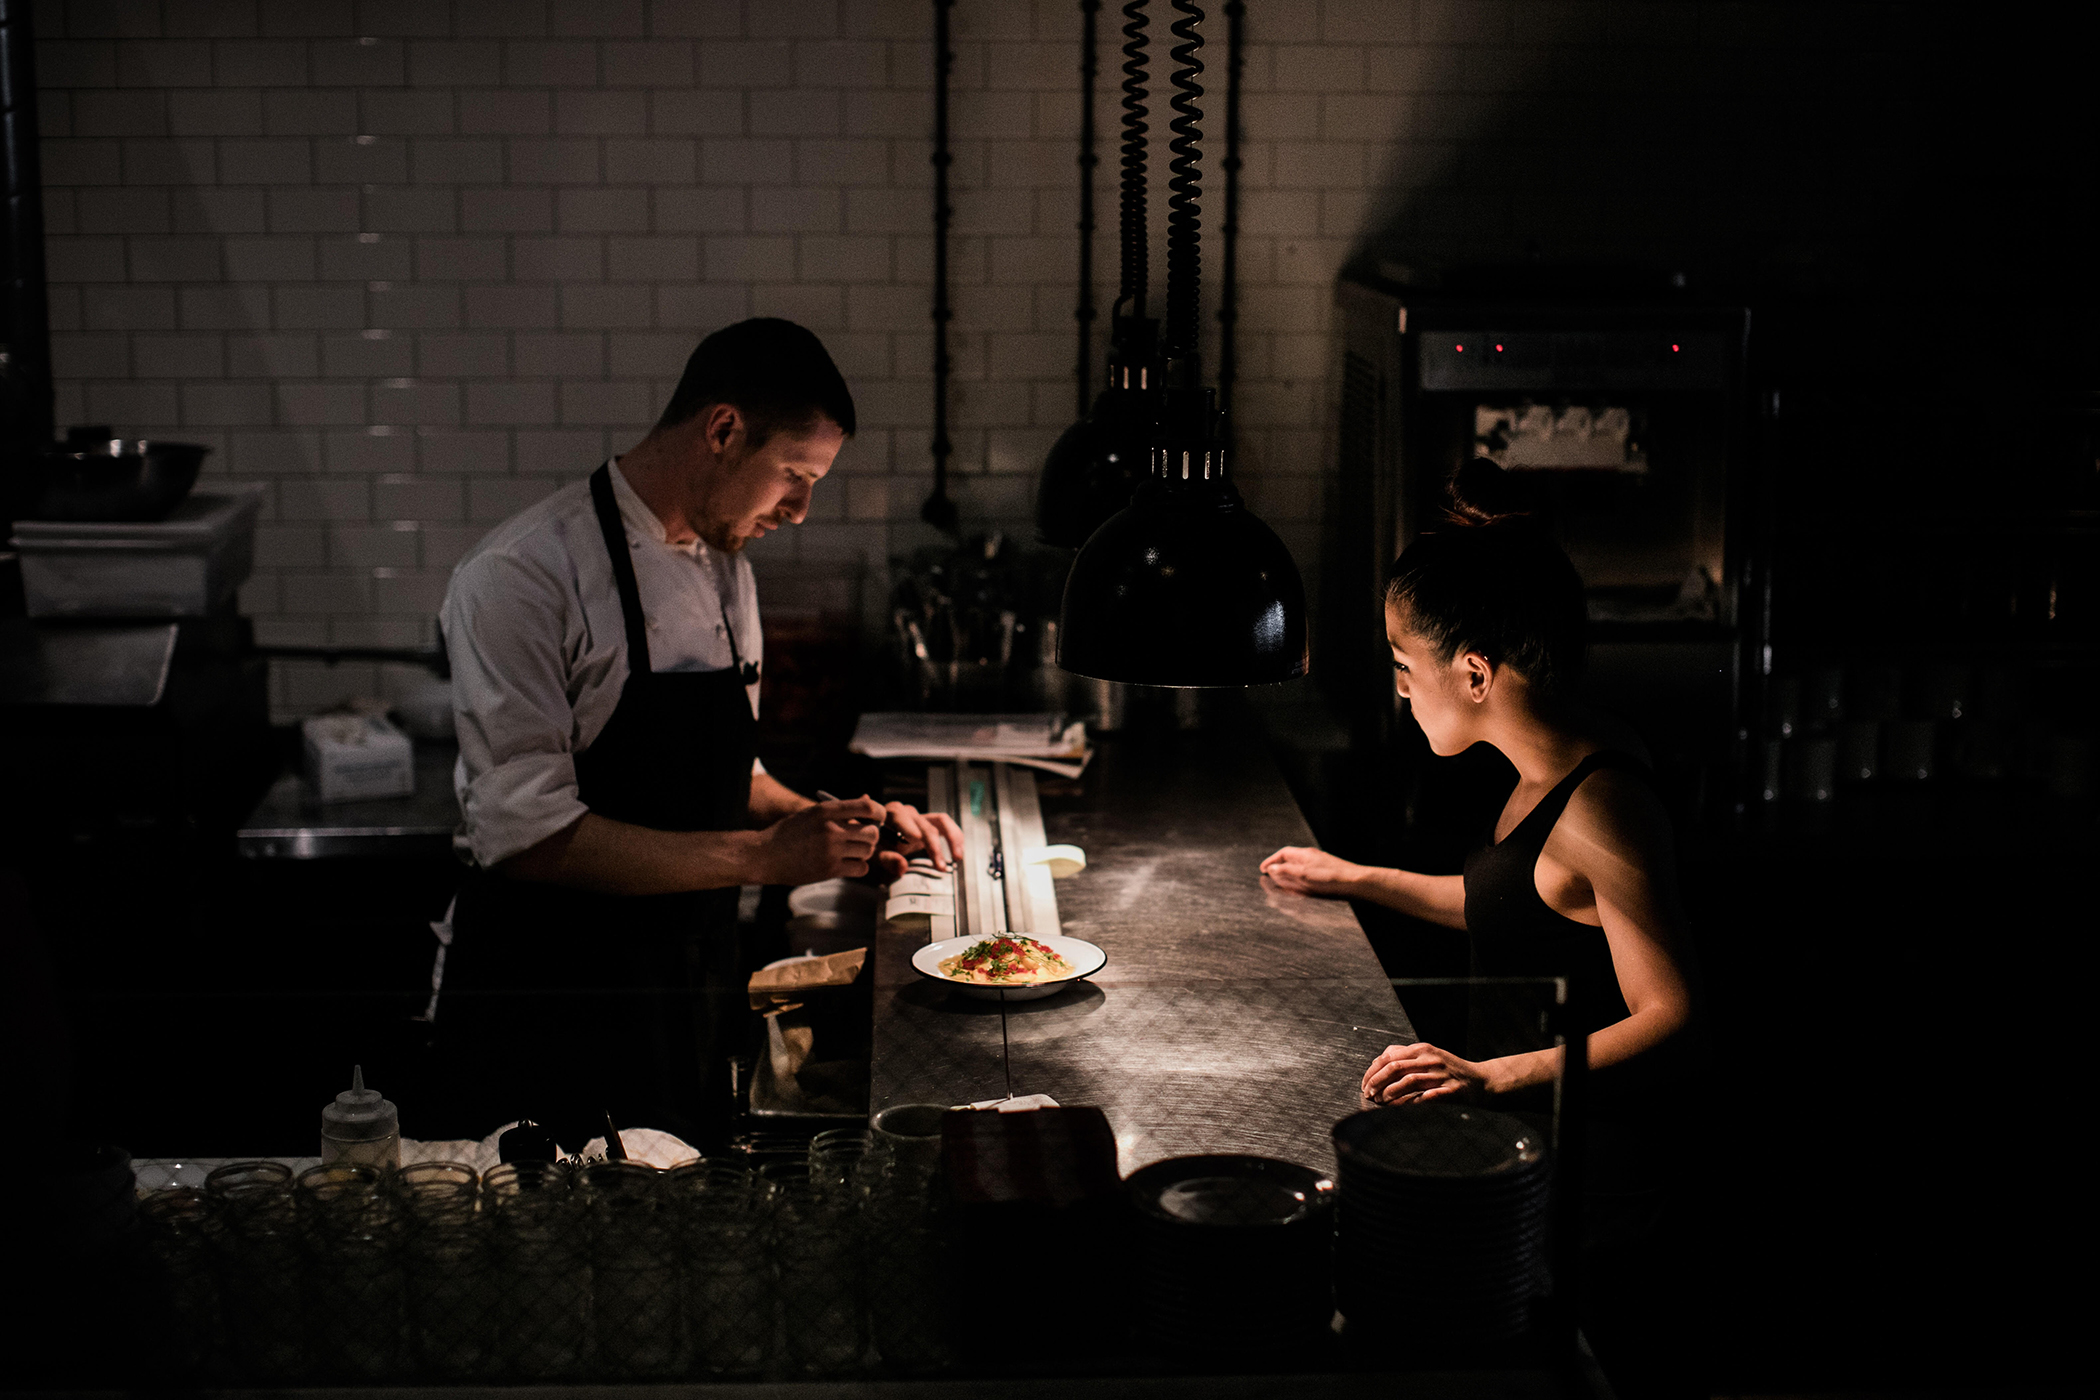 busy kitchen cottage public house imperial chef to leave busy kitchens for culinary education